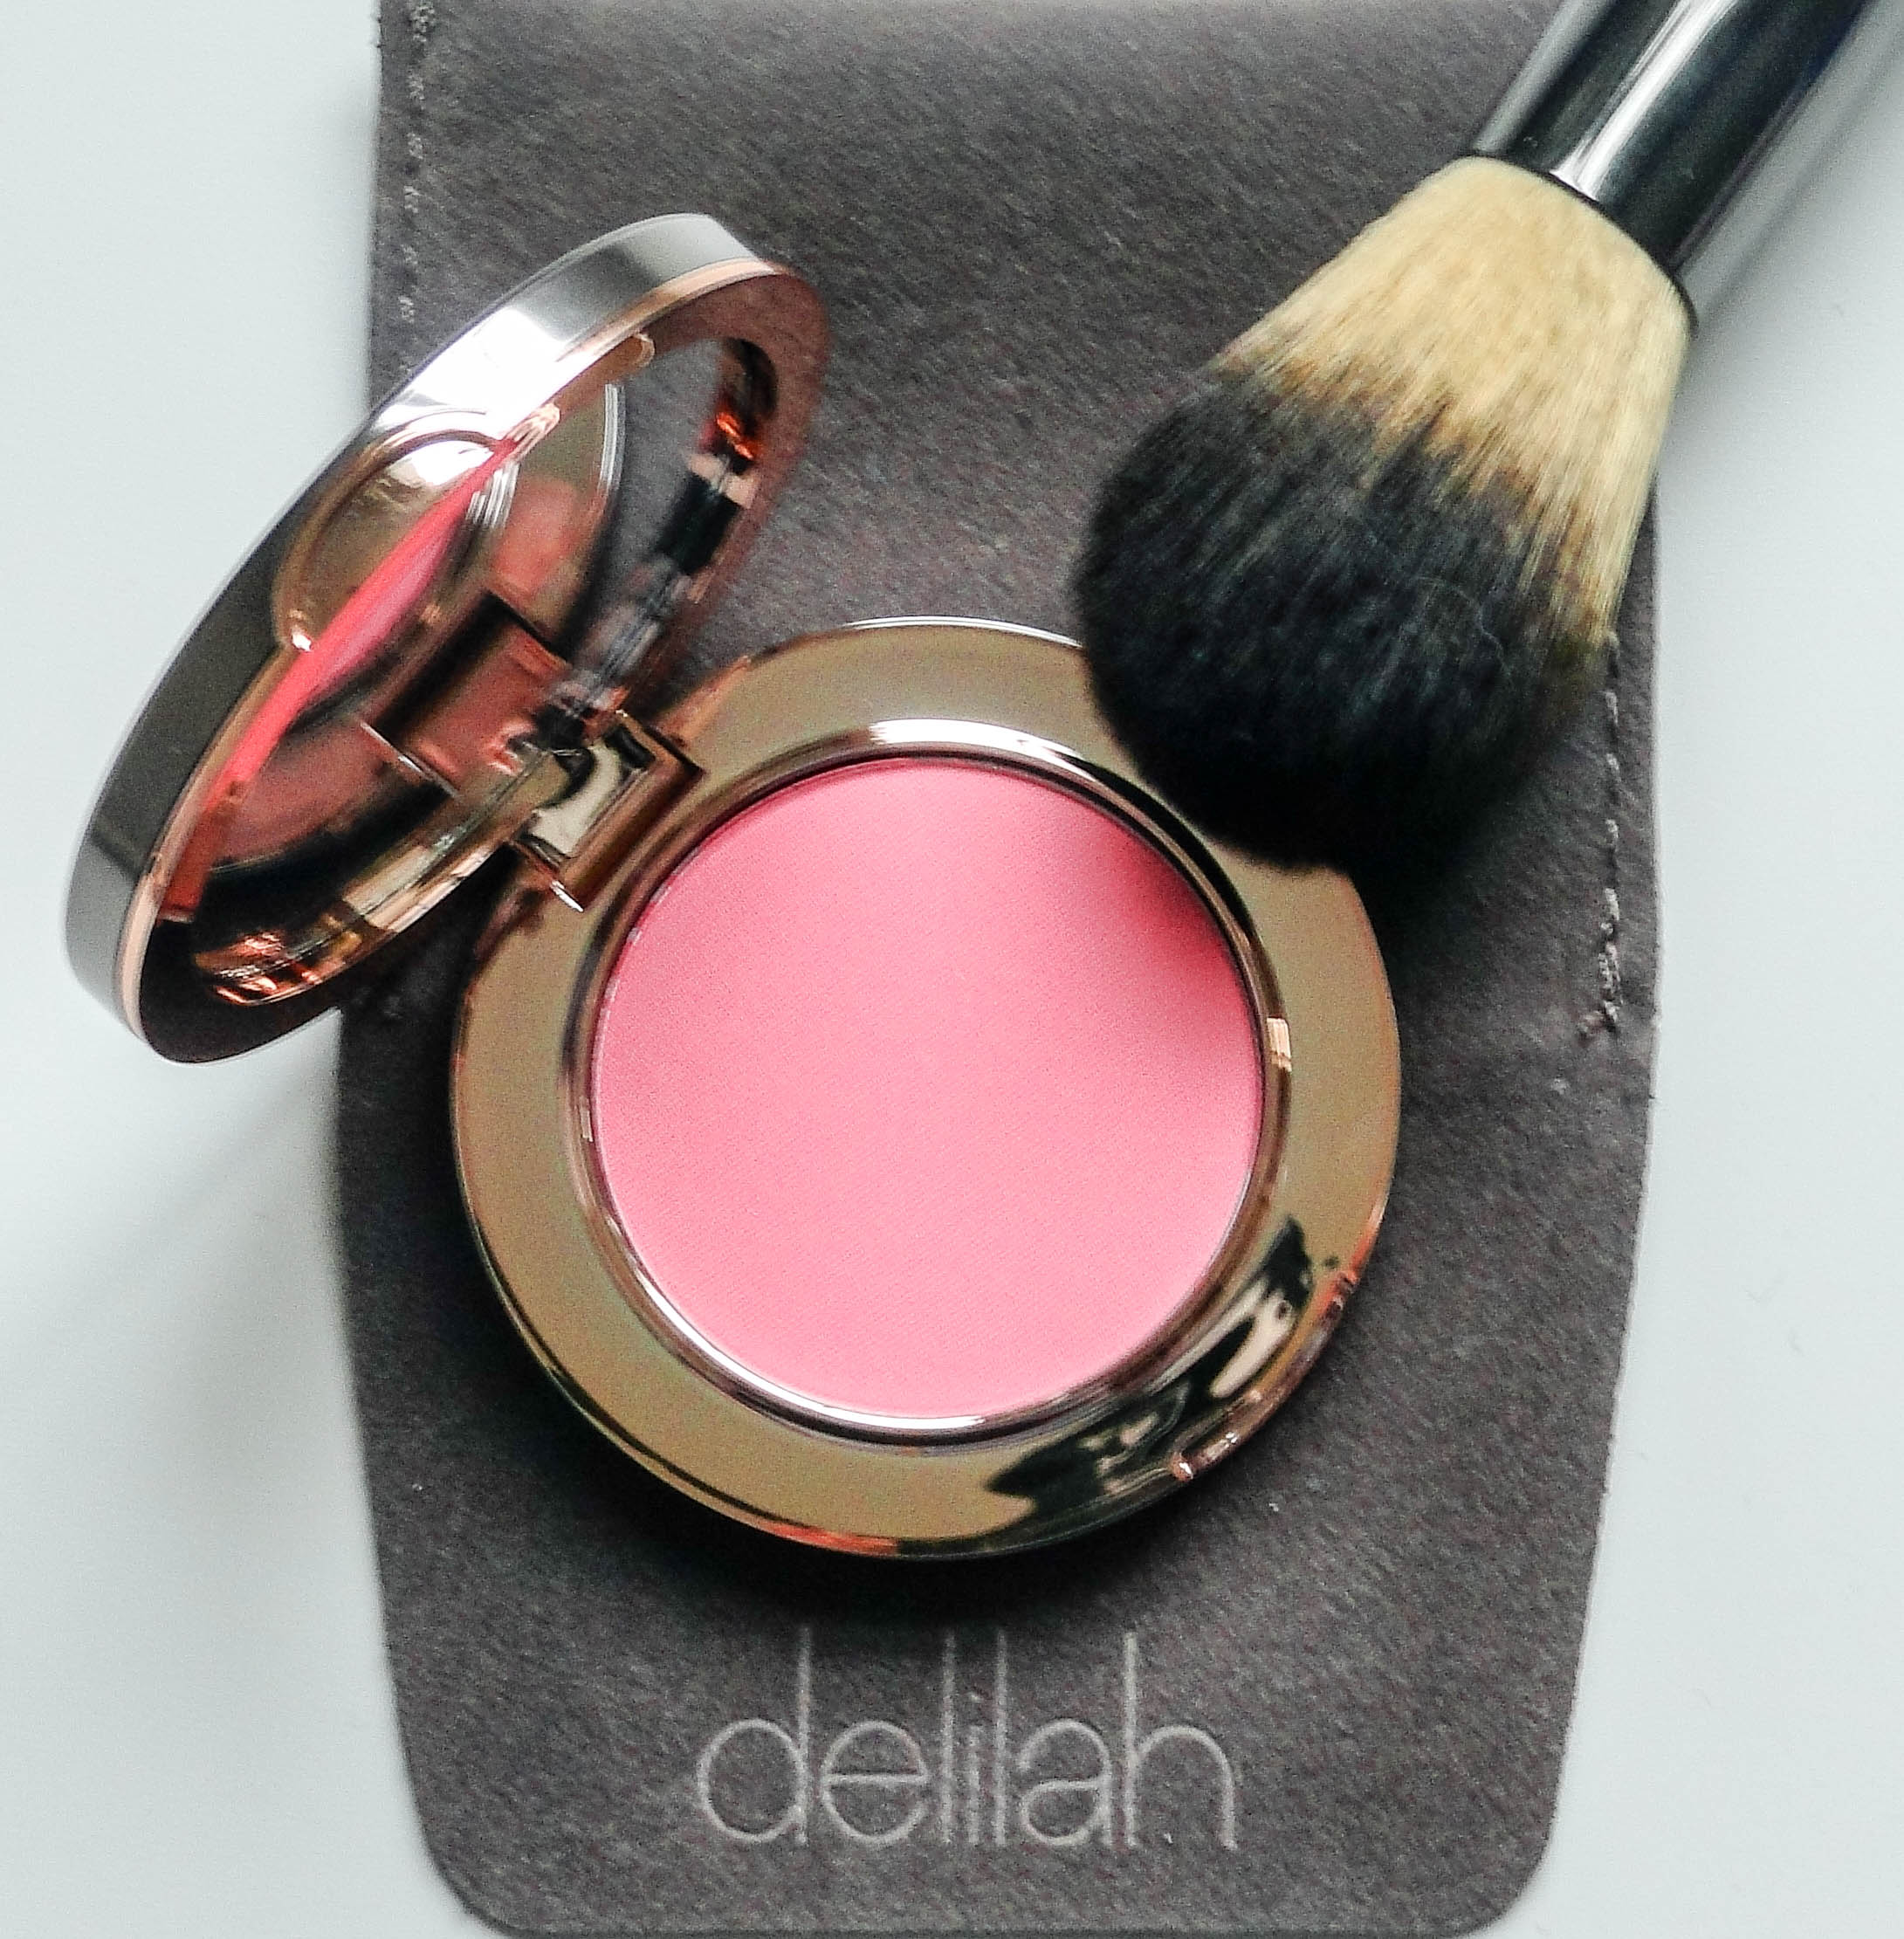 Delilah Cosmetics Blush - Lullaby-6